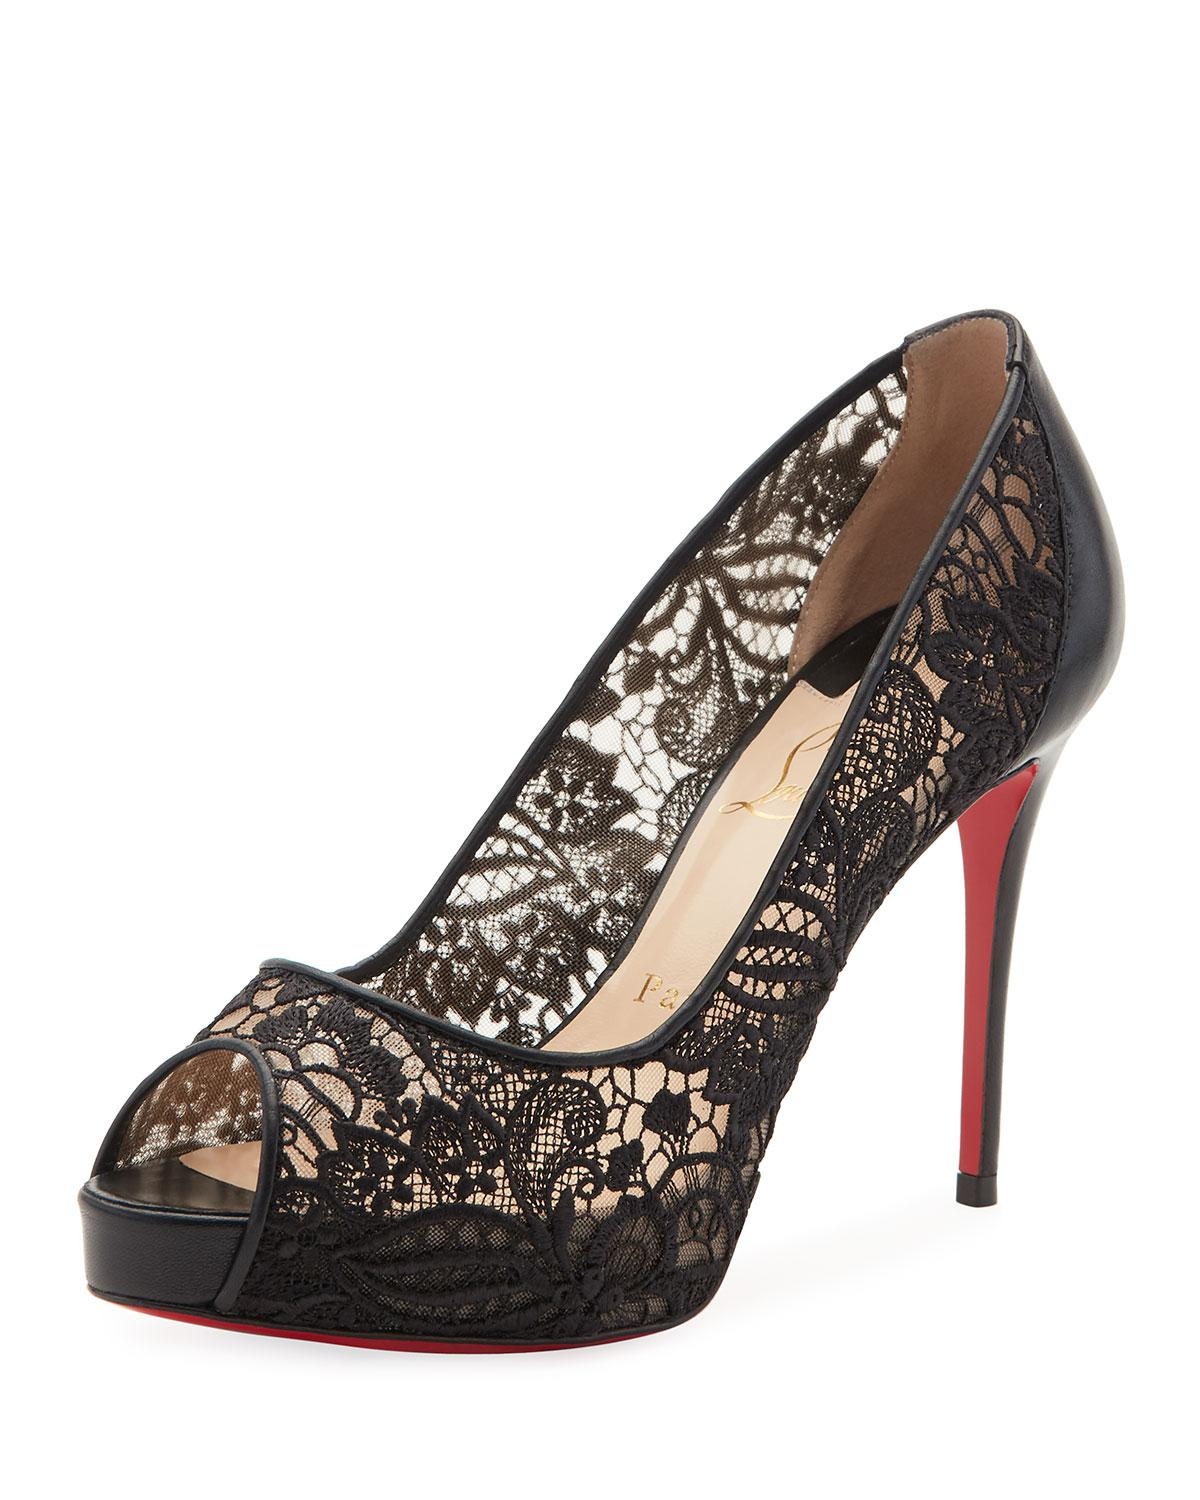 e63099f7b8d ... sweden lyst christian louboutin very lace peep toe red sole pump in  black eacf3 a0c15 ...